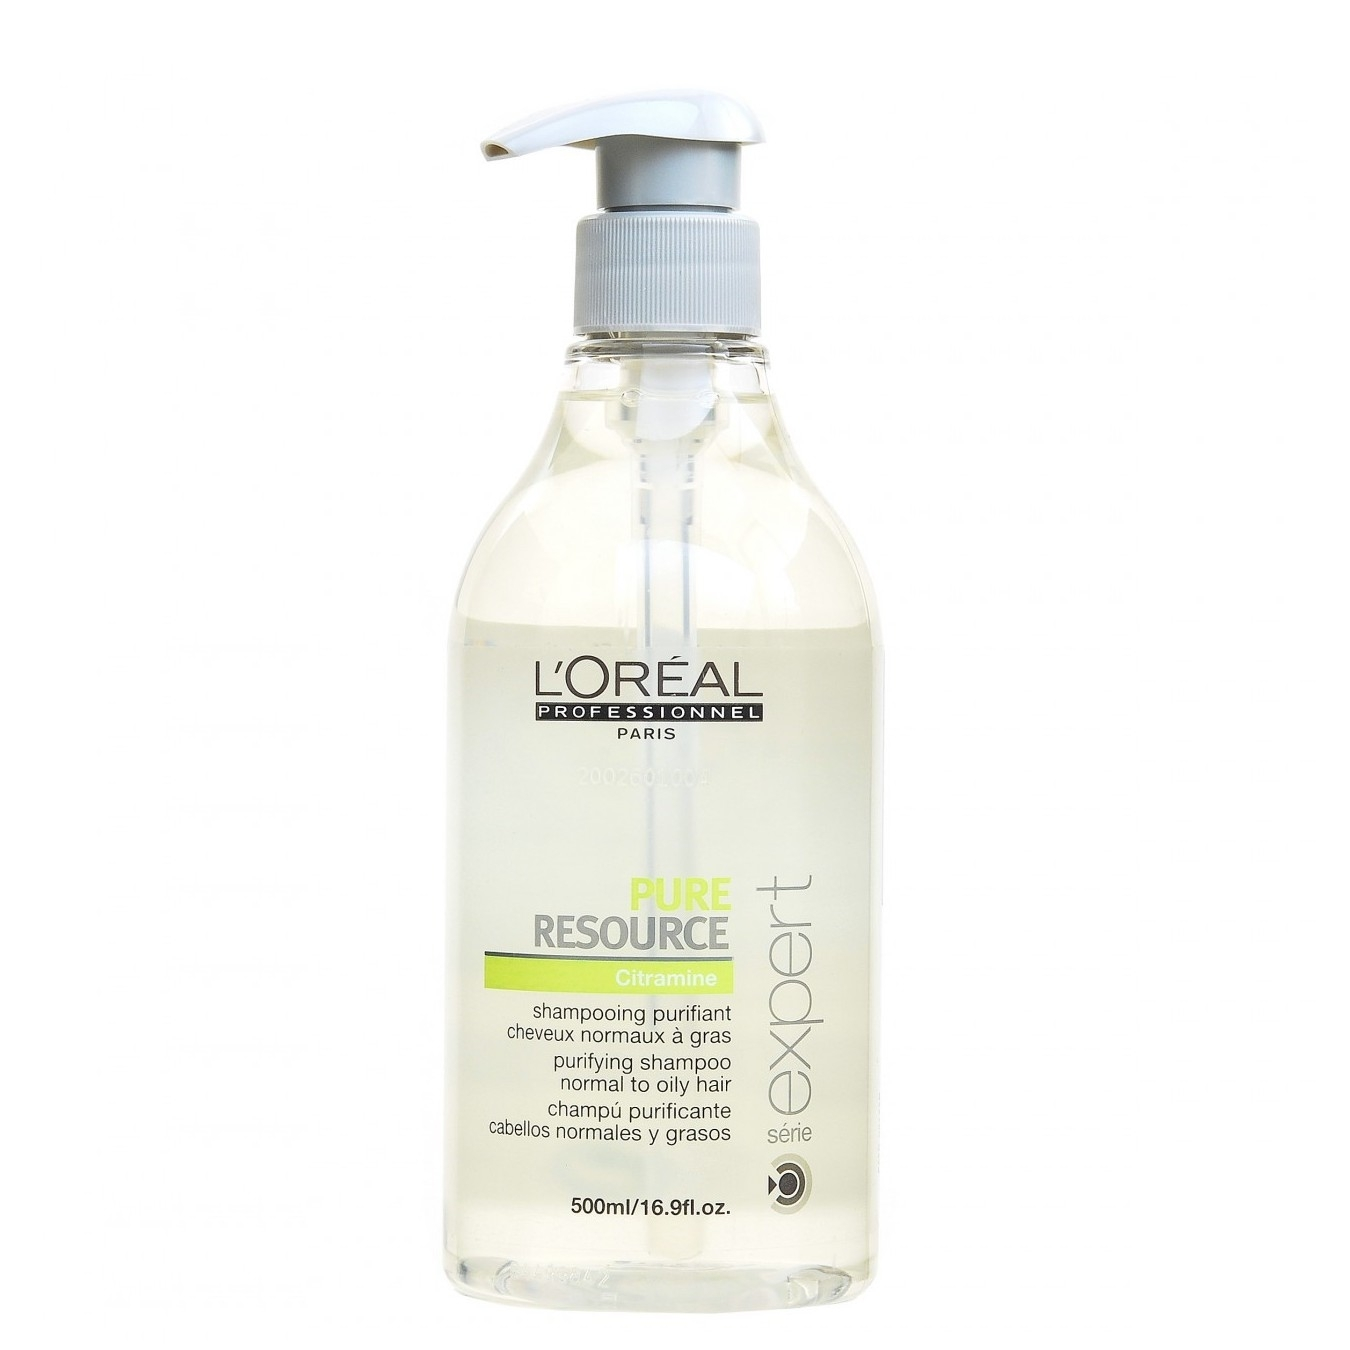 LOREAL PURE RESOURCE SHP 500ML.jpg